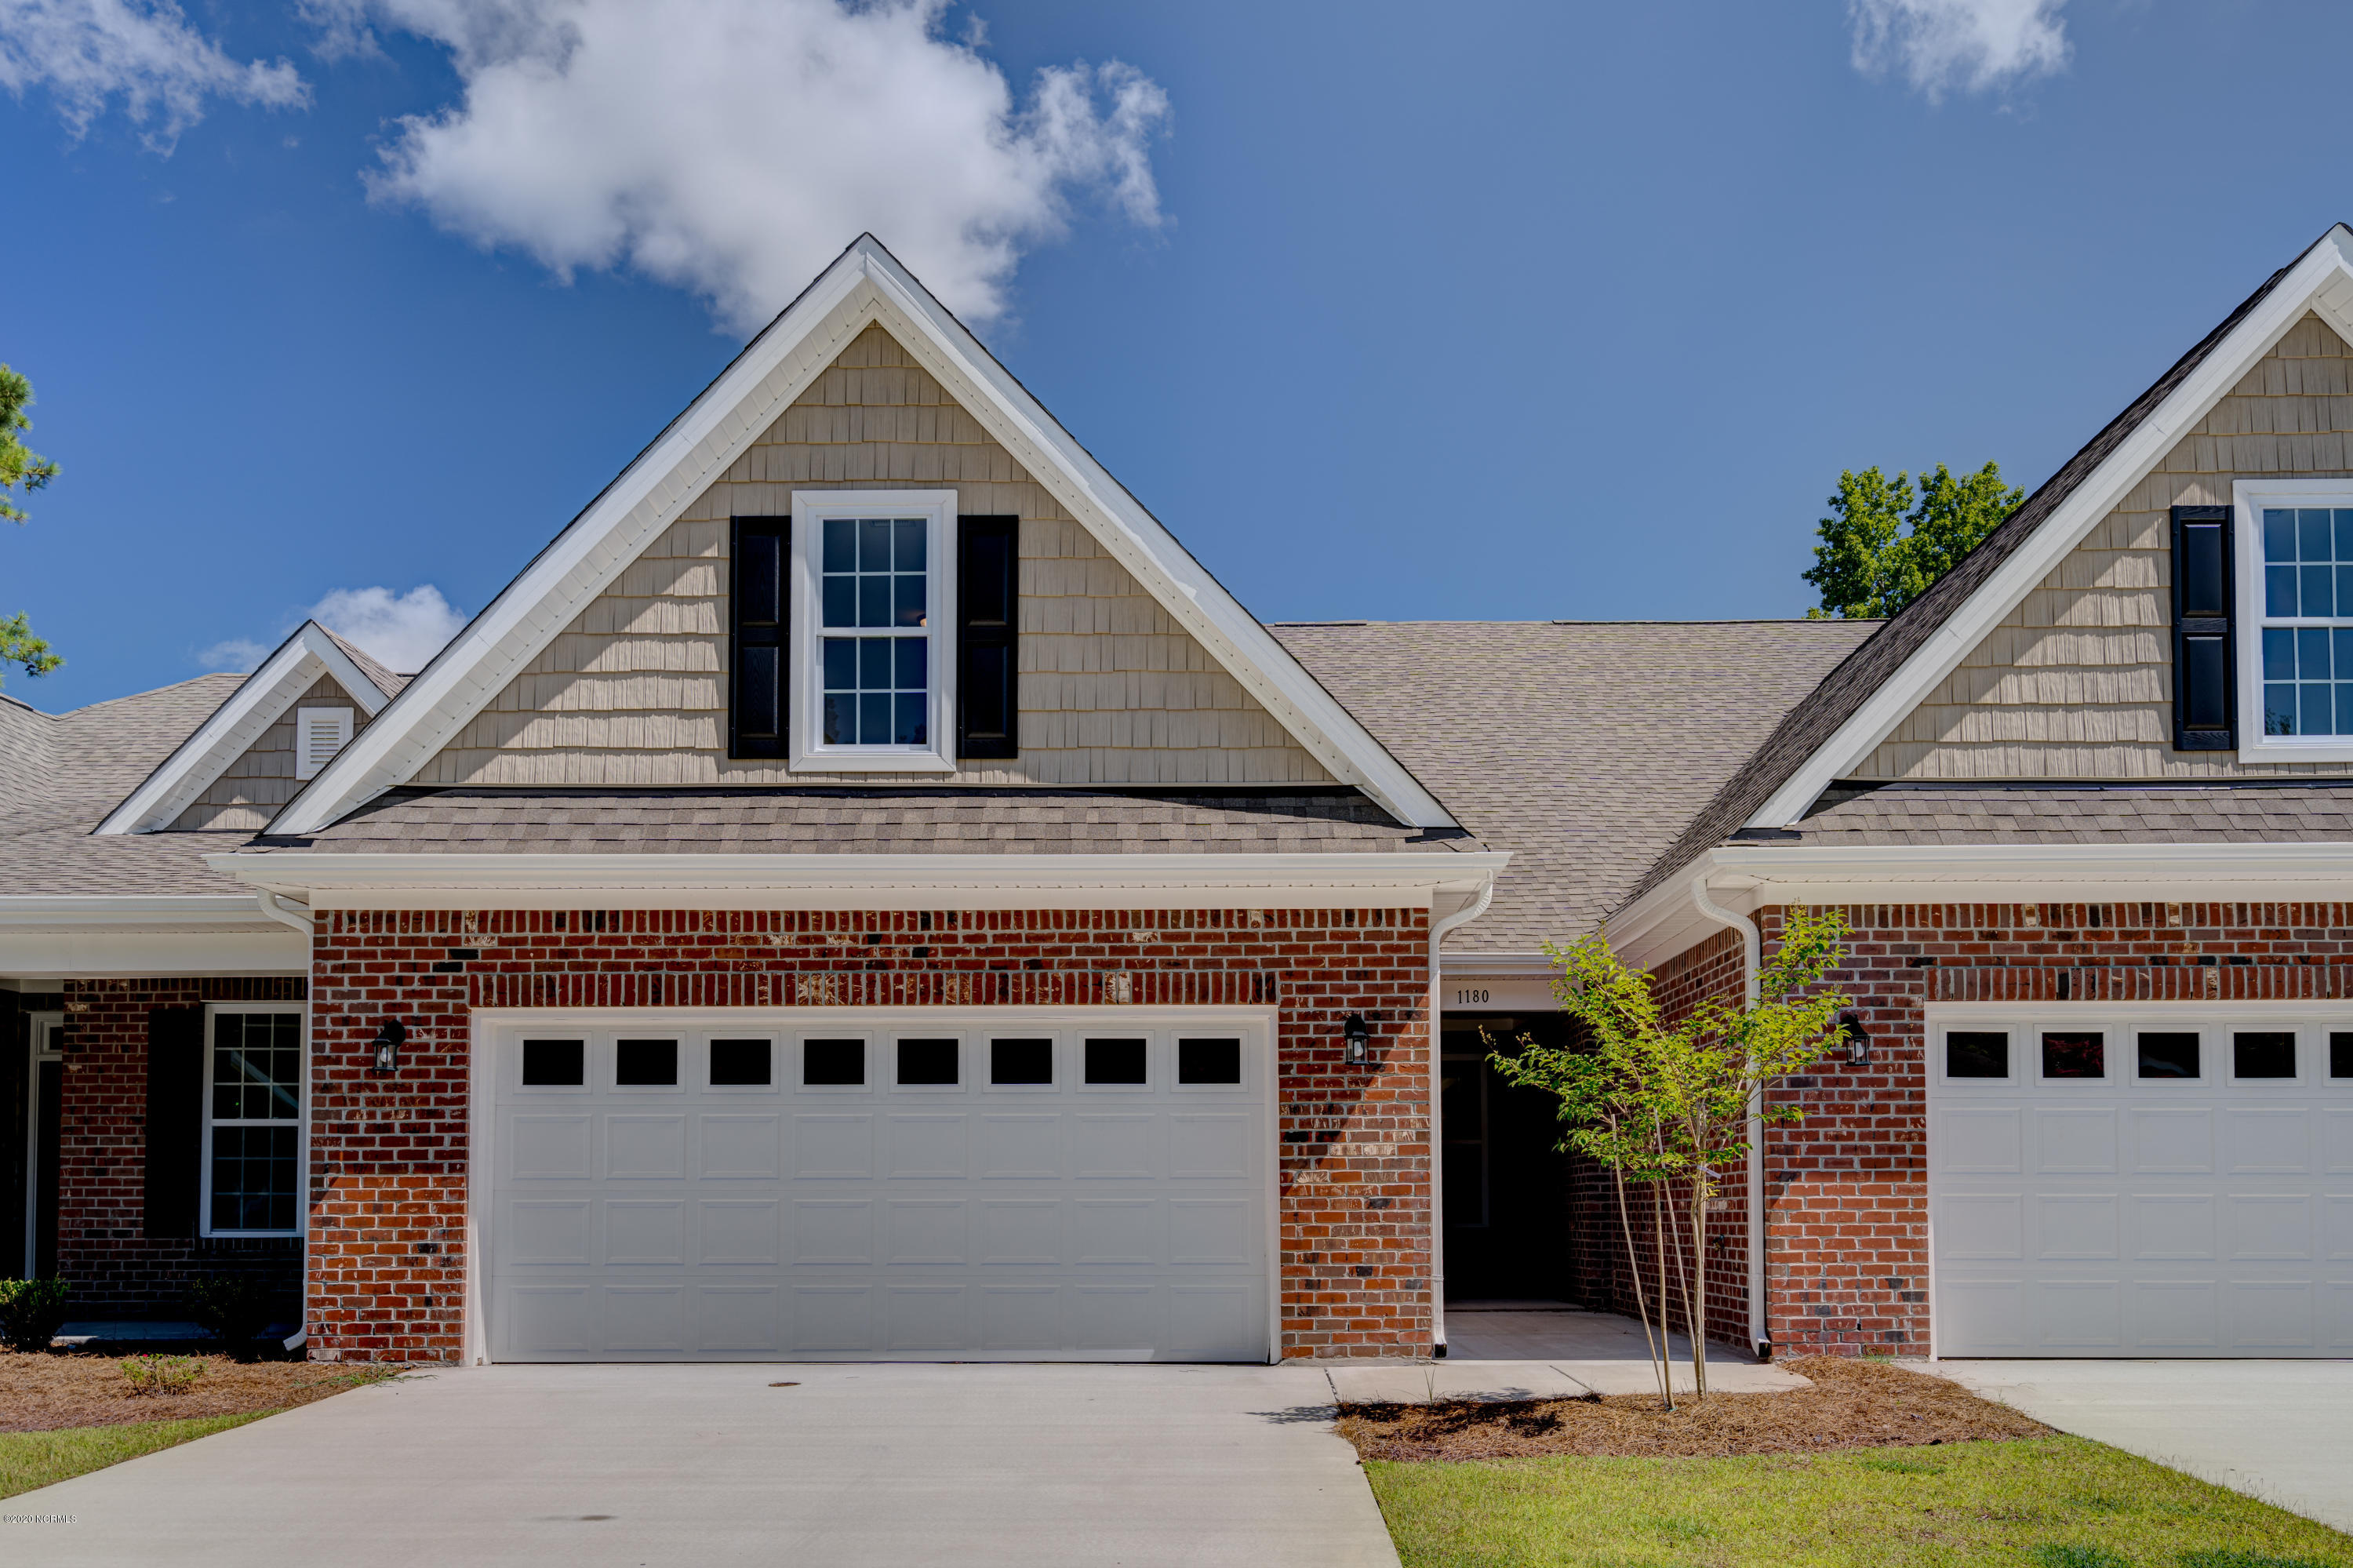 1184 Greensview Circle, Leland, North Carolina 28451, 2 Bedrooms Bedrooms, ,2 BathroomsBathrooms,Residential,For Sale,Greensview,100229497